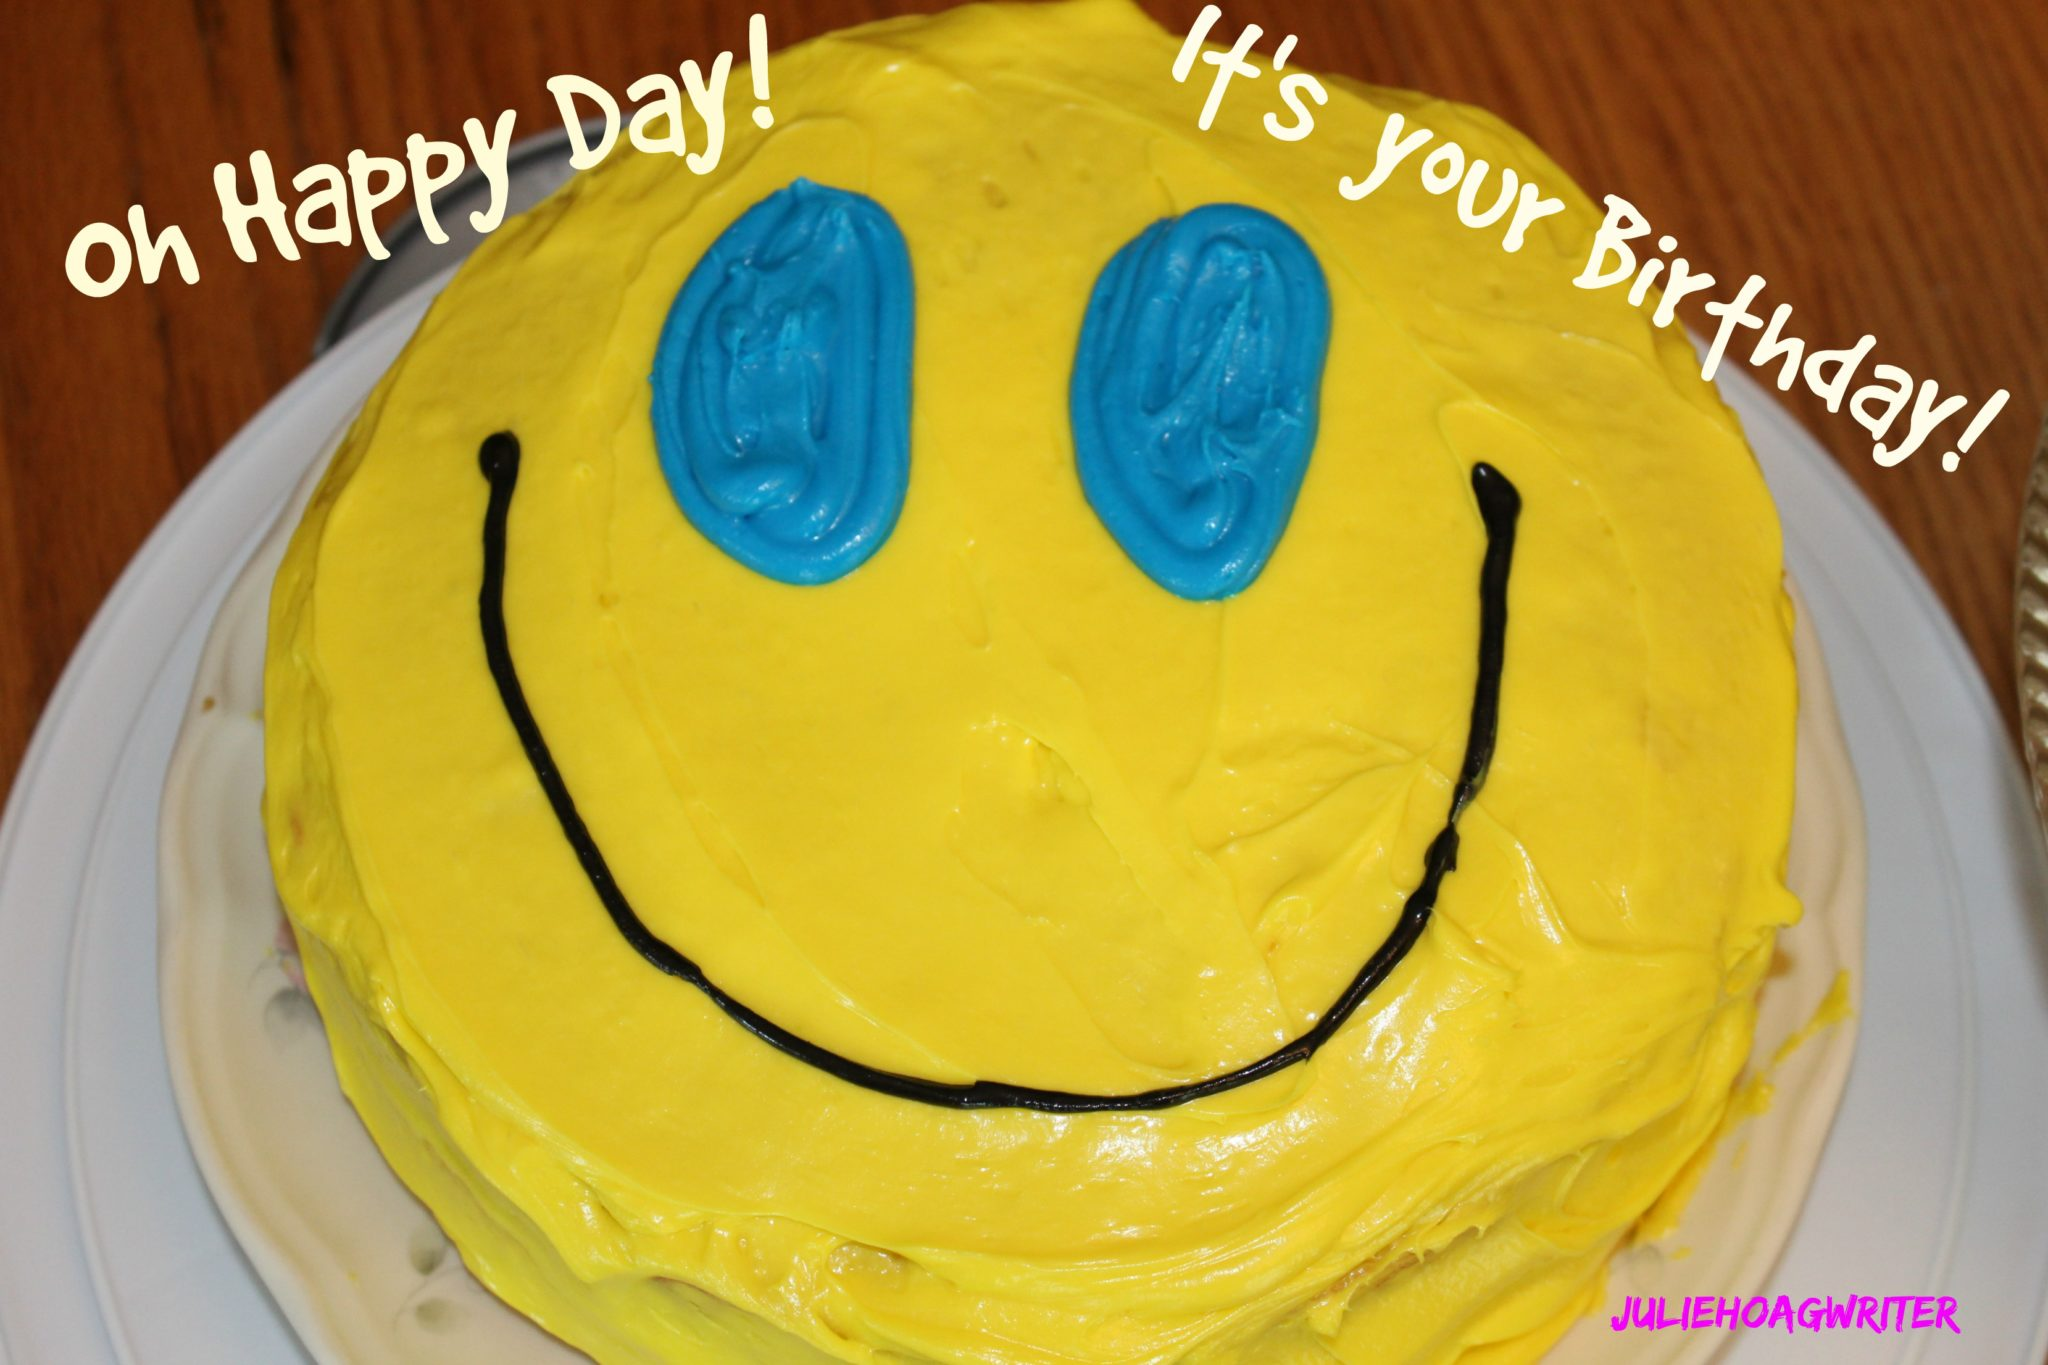 Tips to Survive Hosting a kids birthday party. Smiley face birthday cake. #party #partyideas #birthdayparty #kids #partyideas #partyplanning #sleepover #partytime #host #entertaining #host